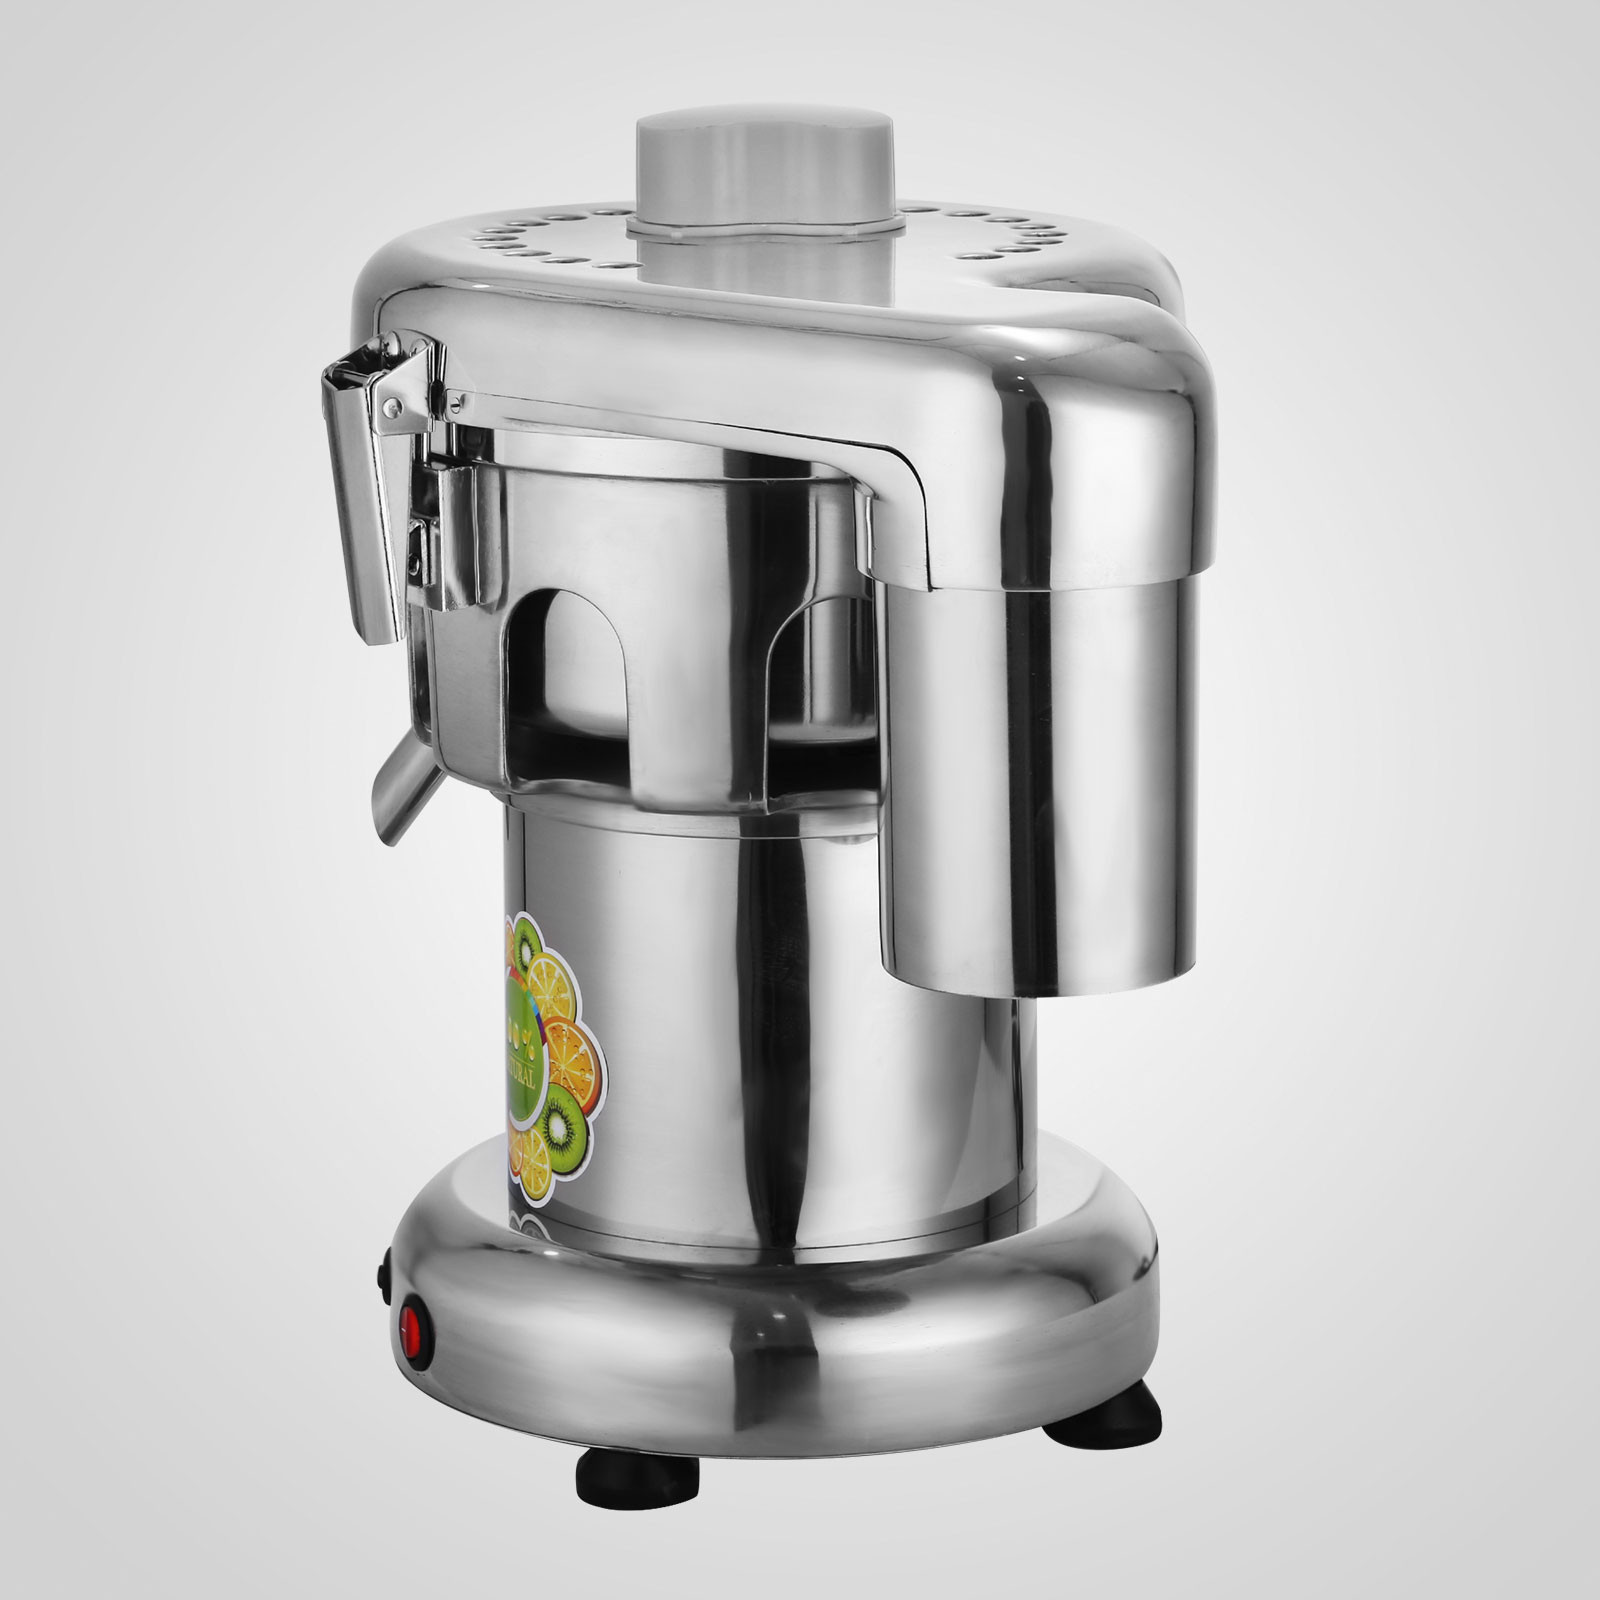 2800 Rpm Commercial Juice Extractor Stainless Steel Juicer